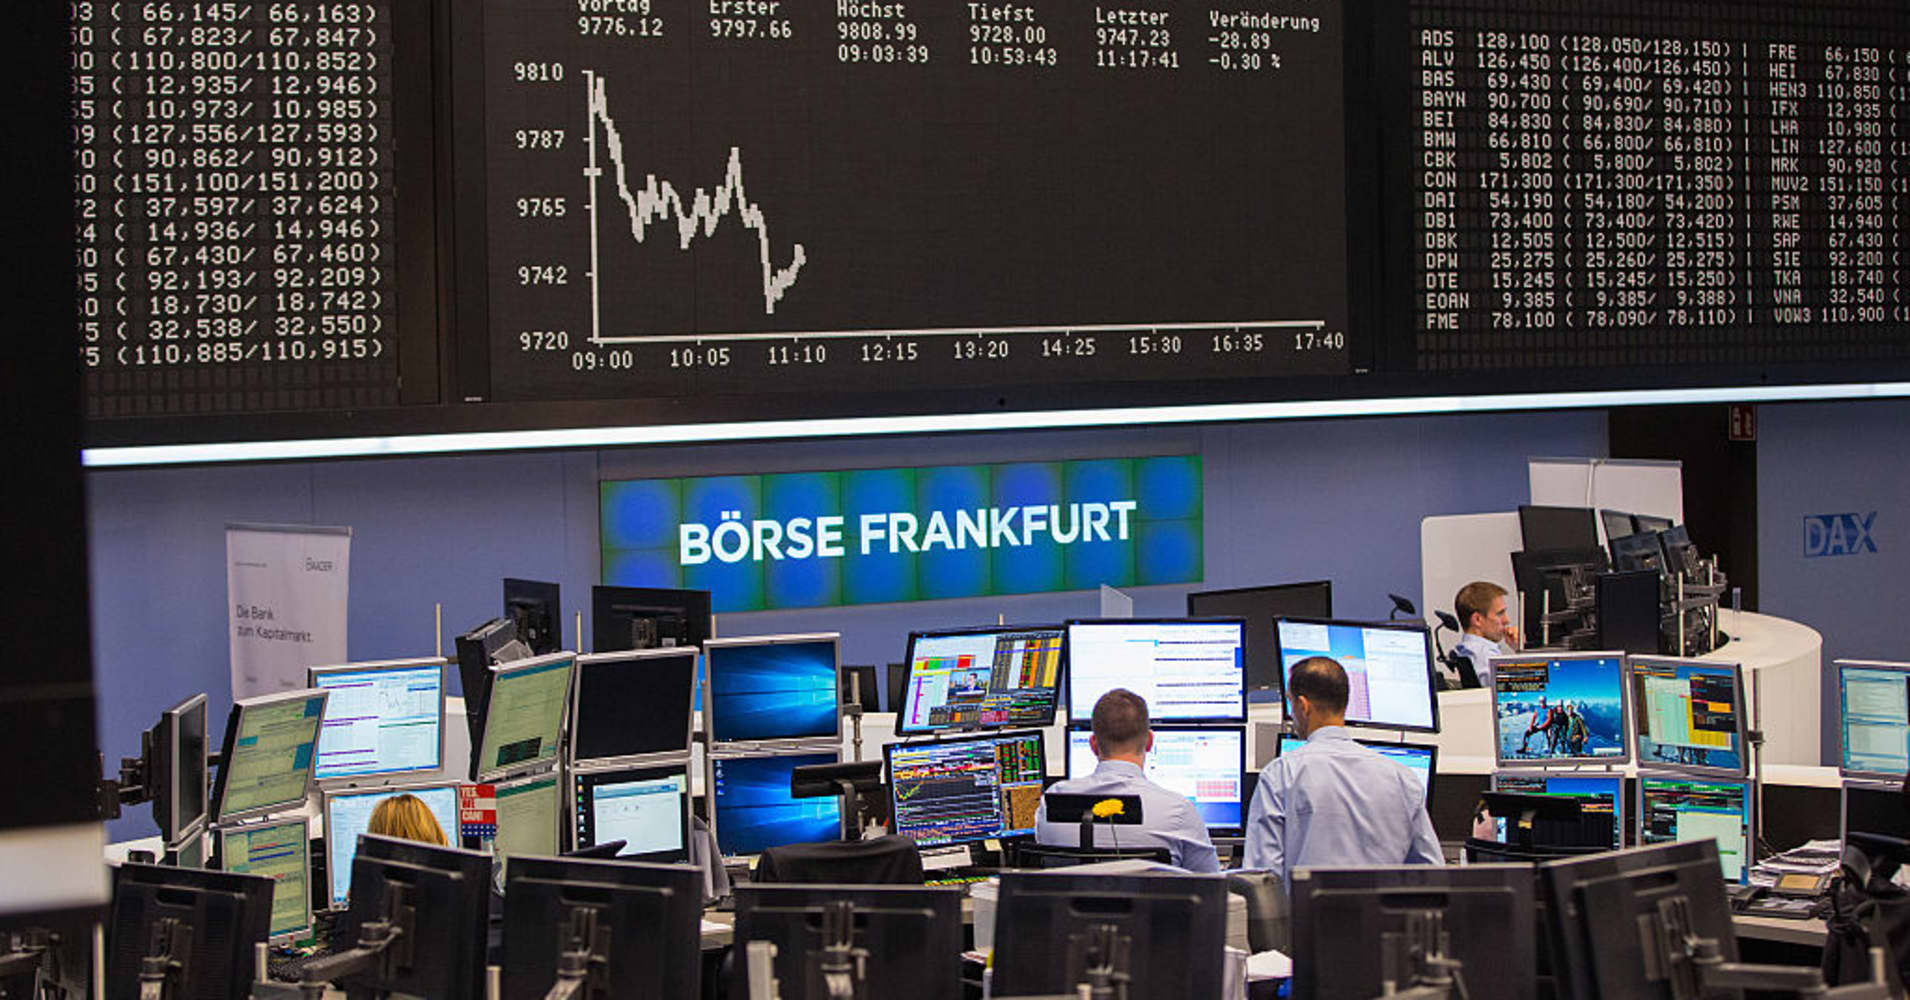 European bourses open mixed amid fresh earnings